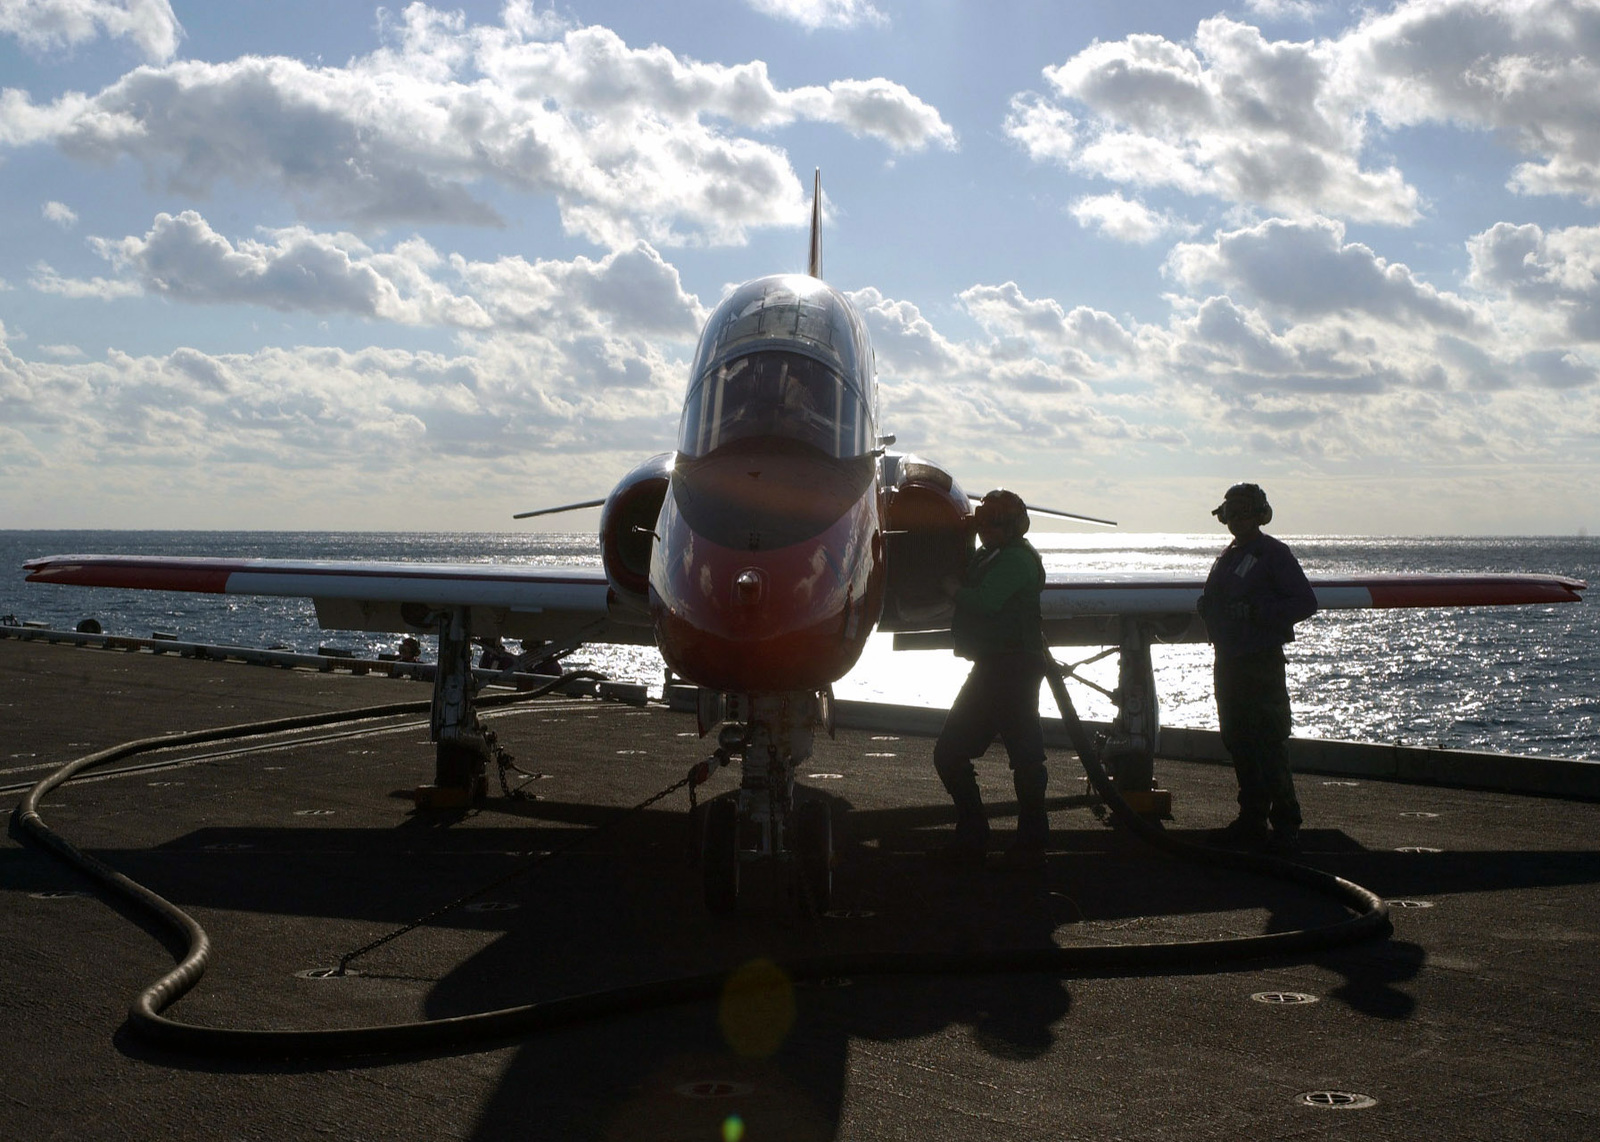 Two U.S. Navy Aviation Boatswain's Mates fuel a T-45 Goshawk trainer aircraft prior to flight operations during carrier qualifications aboard the Nimitz Class Aircraft Carrier USS THEODORE ROOSEVELT (CVN 71) on Dec. 12, 2006, while the ROOSEVELT is maintaining qualifications as part of the U.S. Navy fleet Response Plan. (U.S. Navy photo by Mass Communications SPECIALIST 3rd Class Randall Damm) (Released)